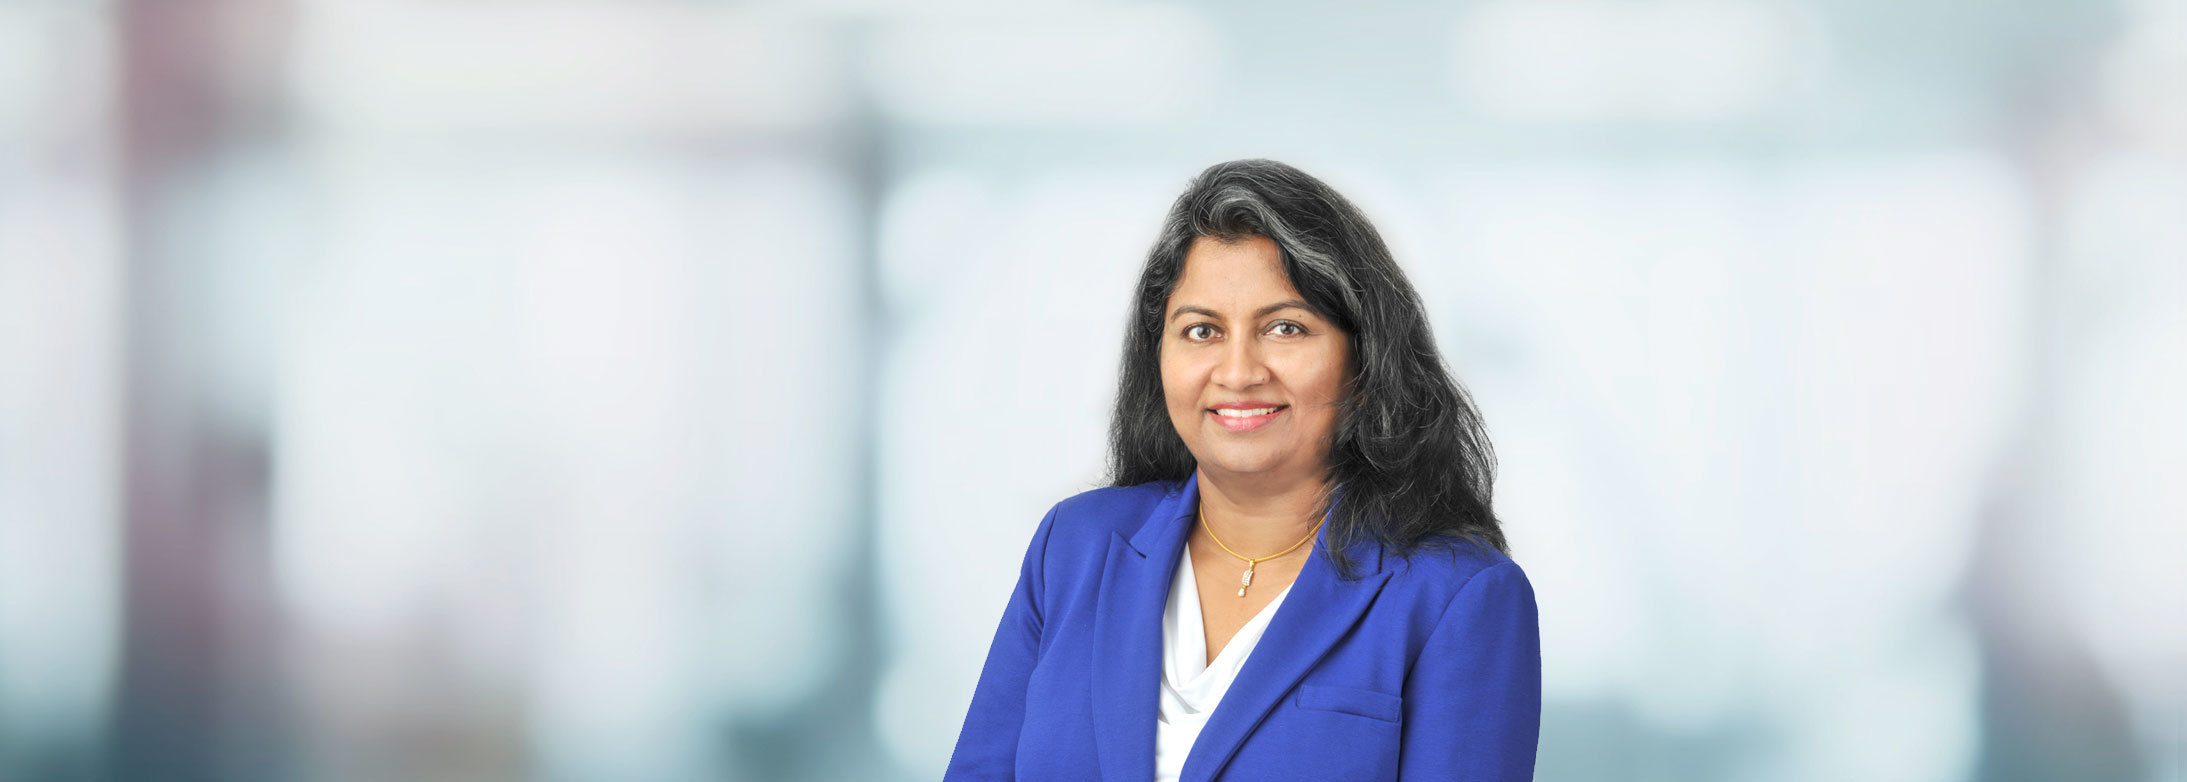 Anandhi Rajan, Swift, Currie, McGhee & Hiers, LLP Photo